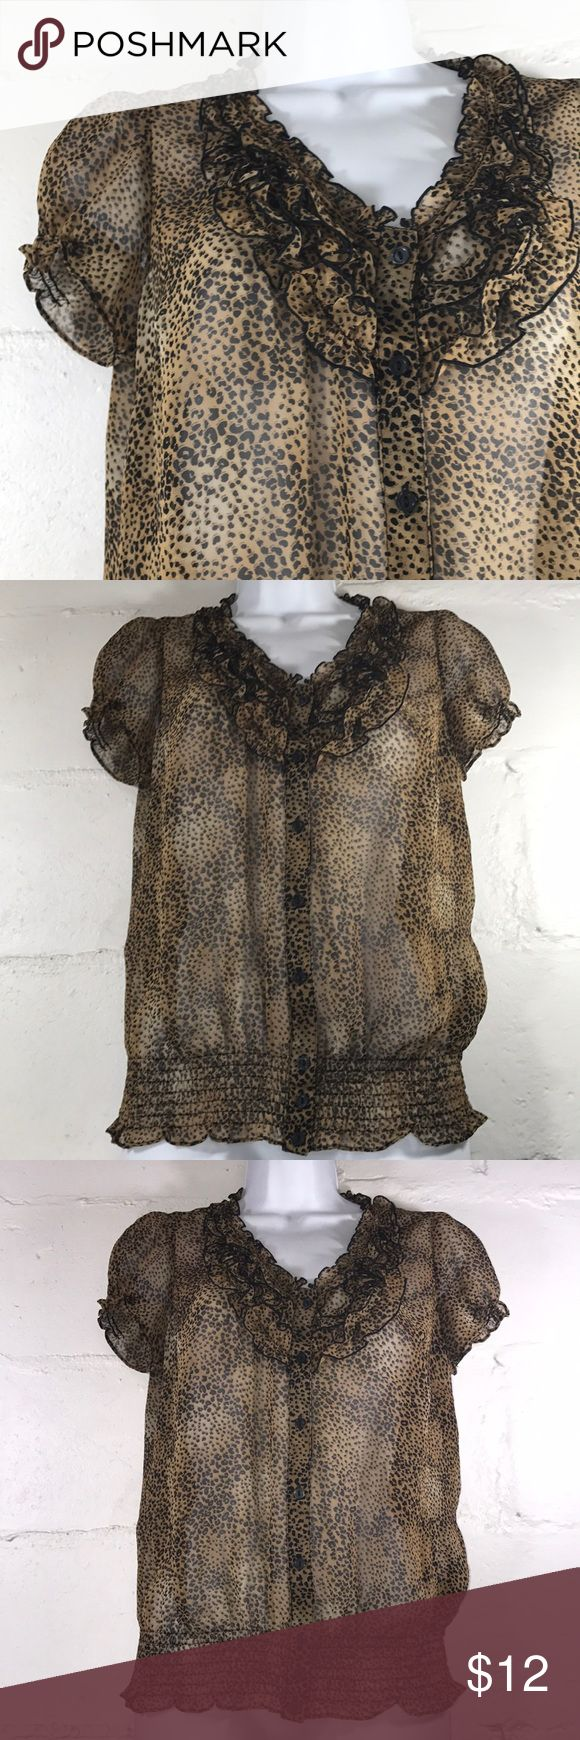 """East 5th Petite Ruffle Front Animal Print Top East 5th Petite Animal Print Ruffled Front Sheer Blouse, 8 Button Front Closure, Capped Sleeves with Partial Elastic, Elasticized Smocked Waistband  Size (PS) """"Petite Small"""" Measurements are Flat-Lay; Bust: Length: Waistband:  Fabric Content; 100% Polyester East 5th Tops Blouses"""